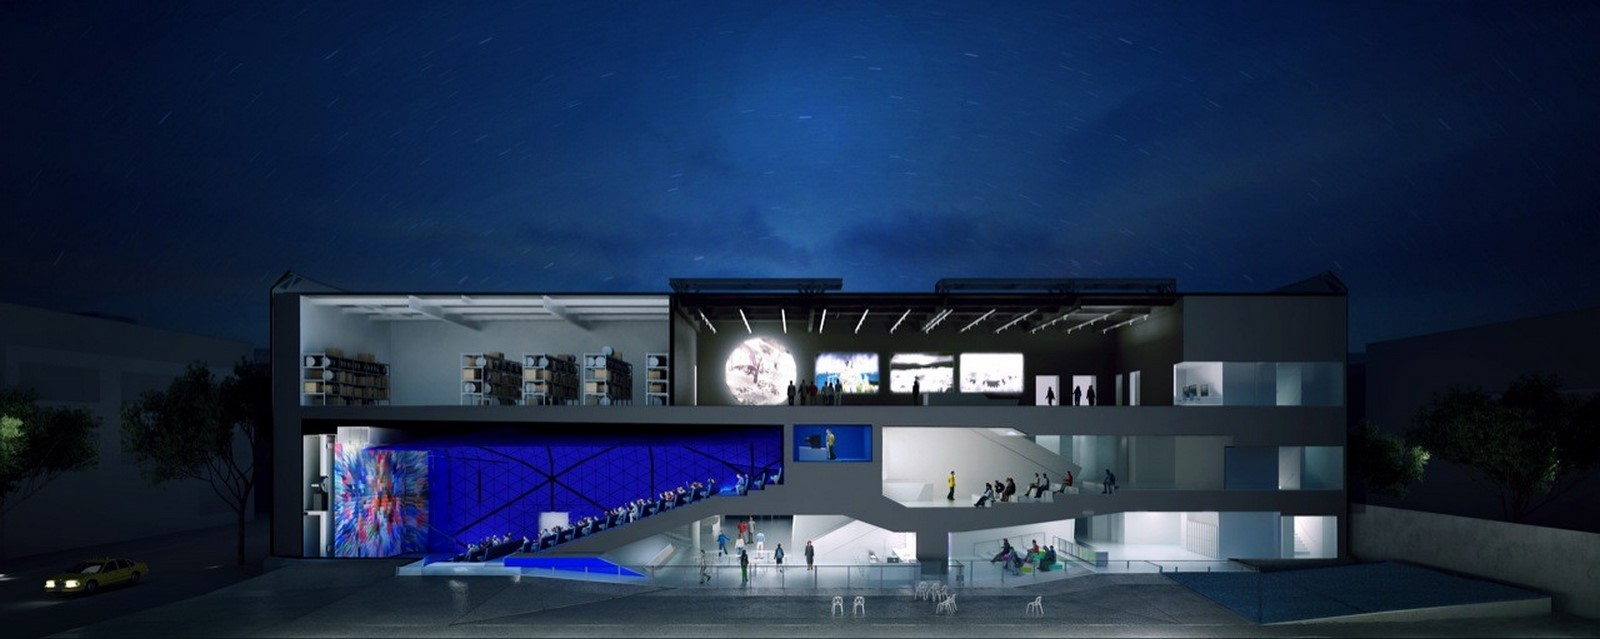 Museum of the Moving Image by Leeser Architecture: Traveling with the pictures - Sheet19